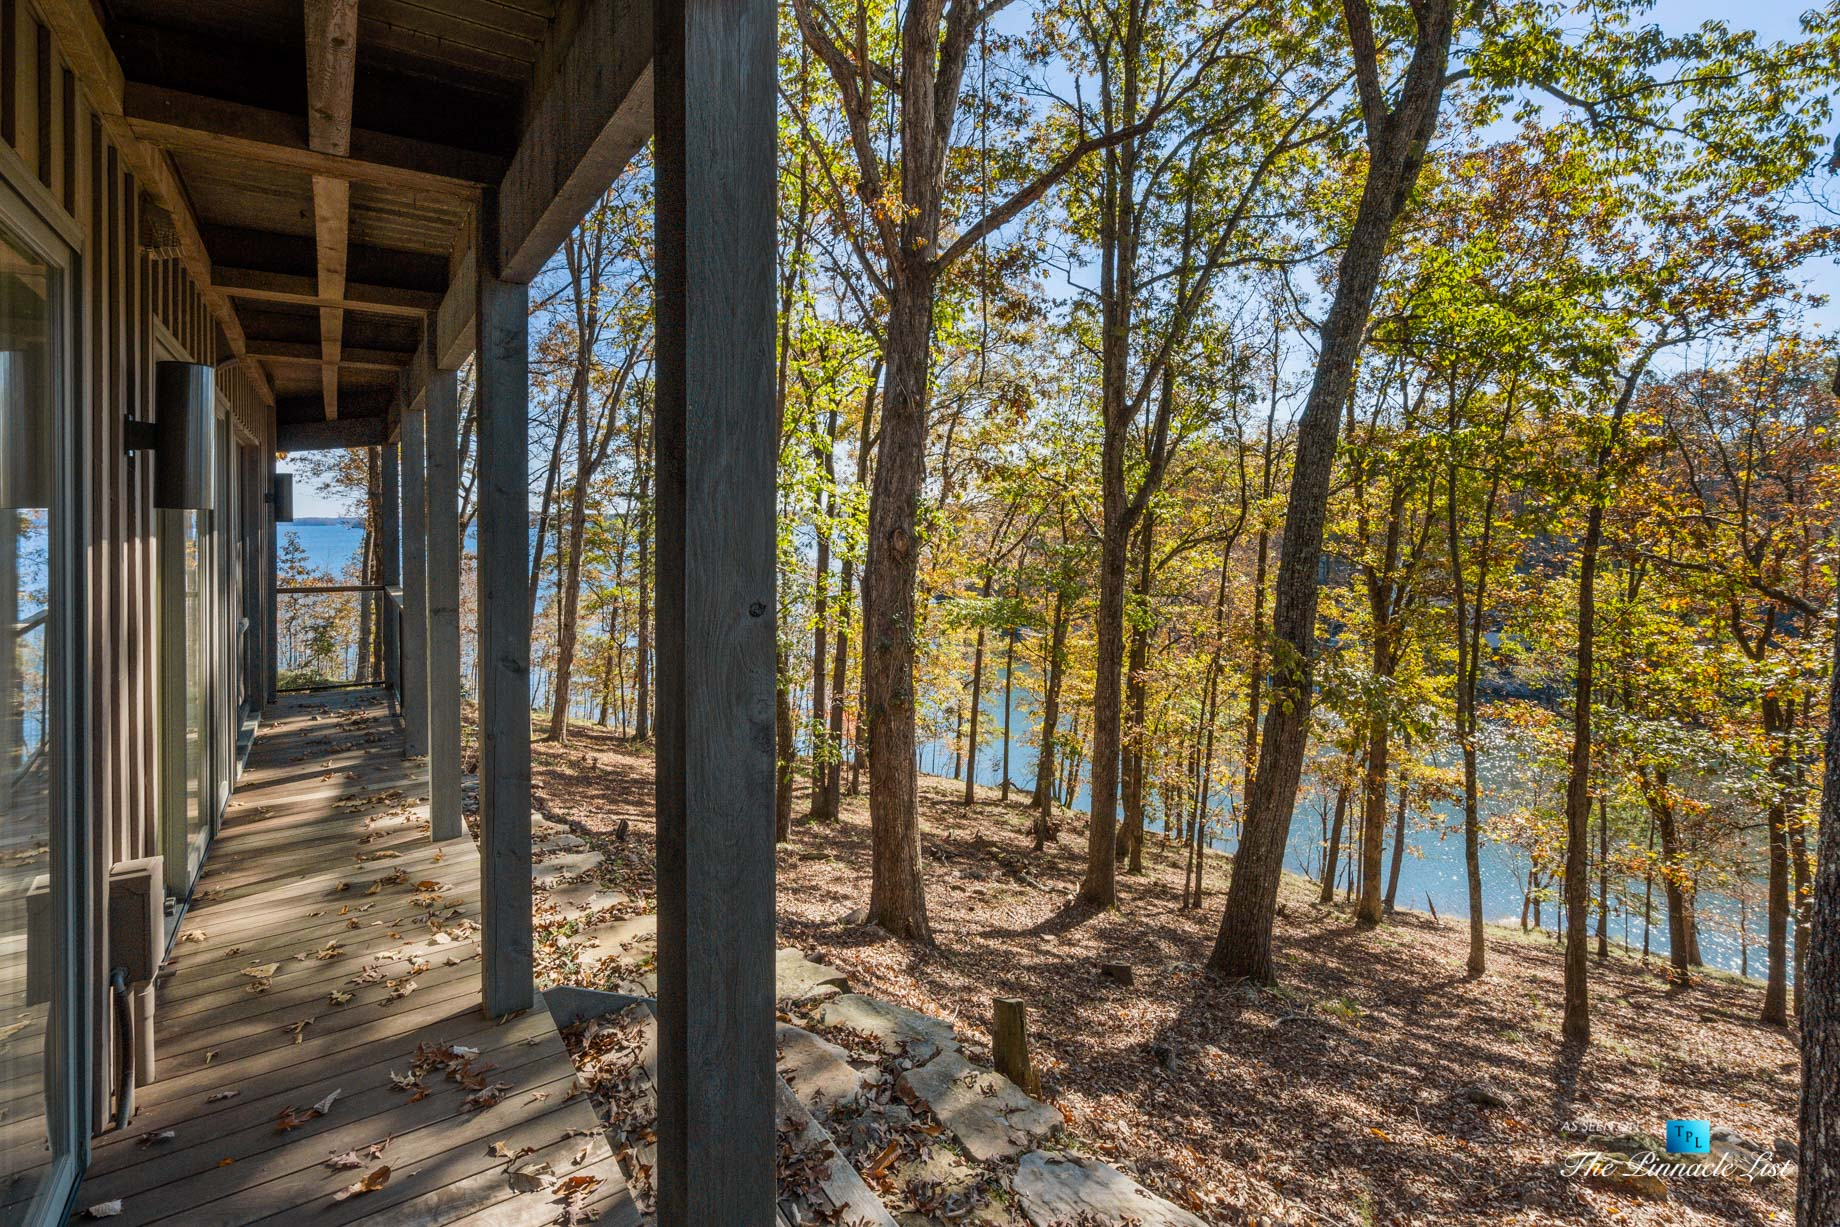 7860 Chestnut Hill Rd, Cumming, GA, USA – House Lake View – Luxury Real Estate – Lake Lanier Mid-Century Modern Stone Home